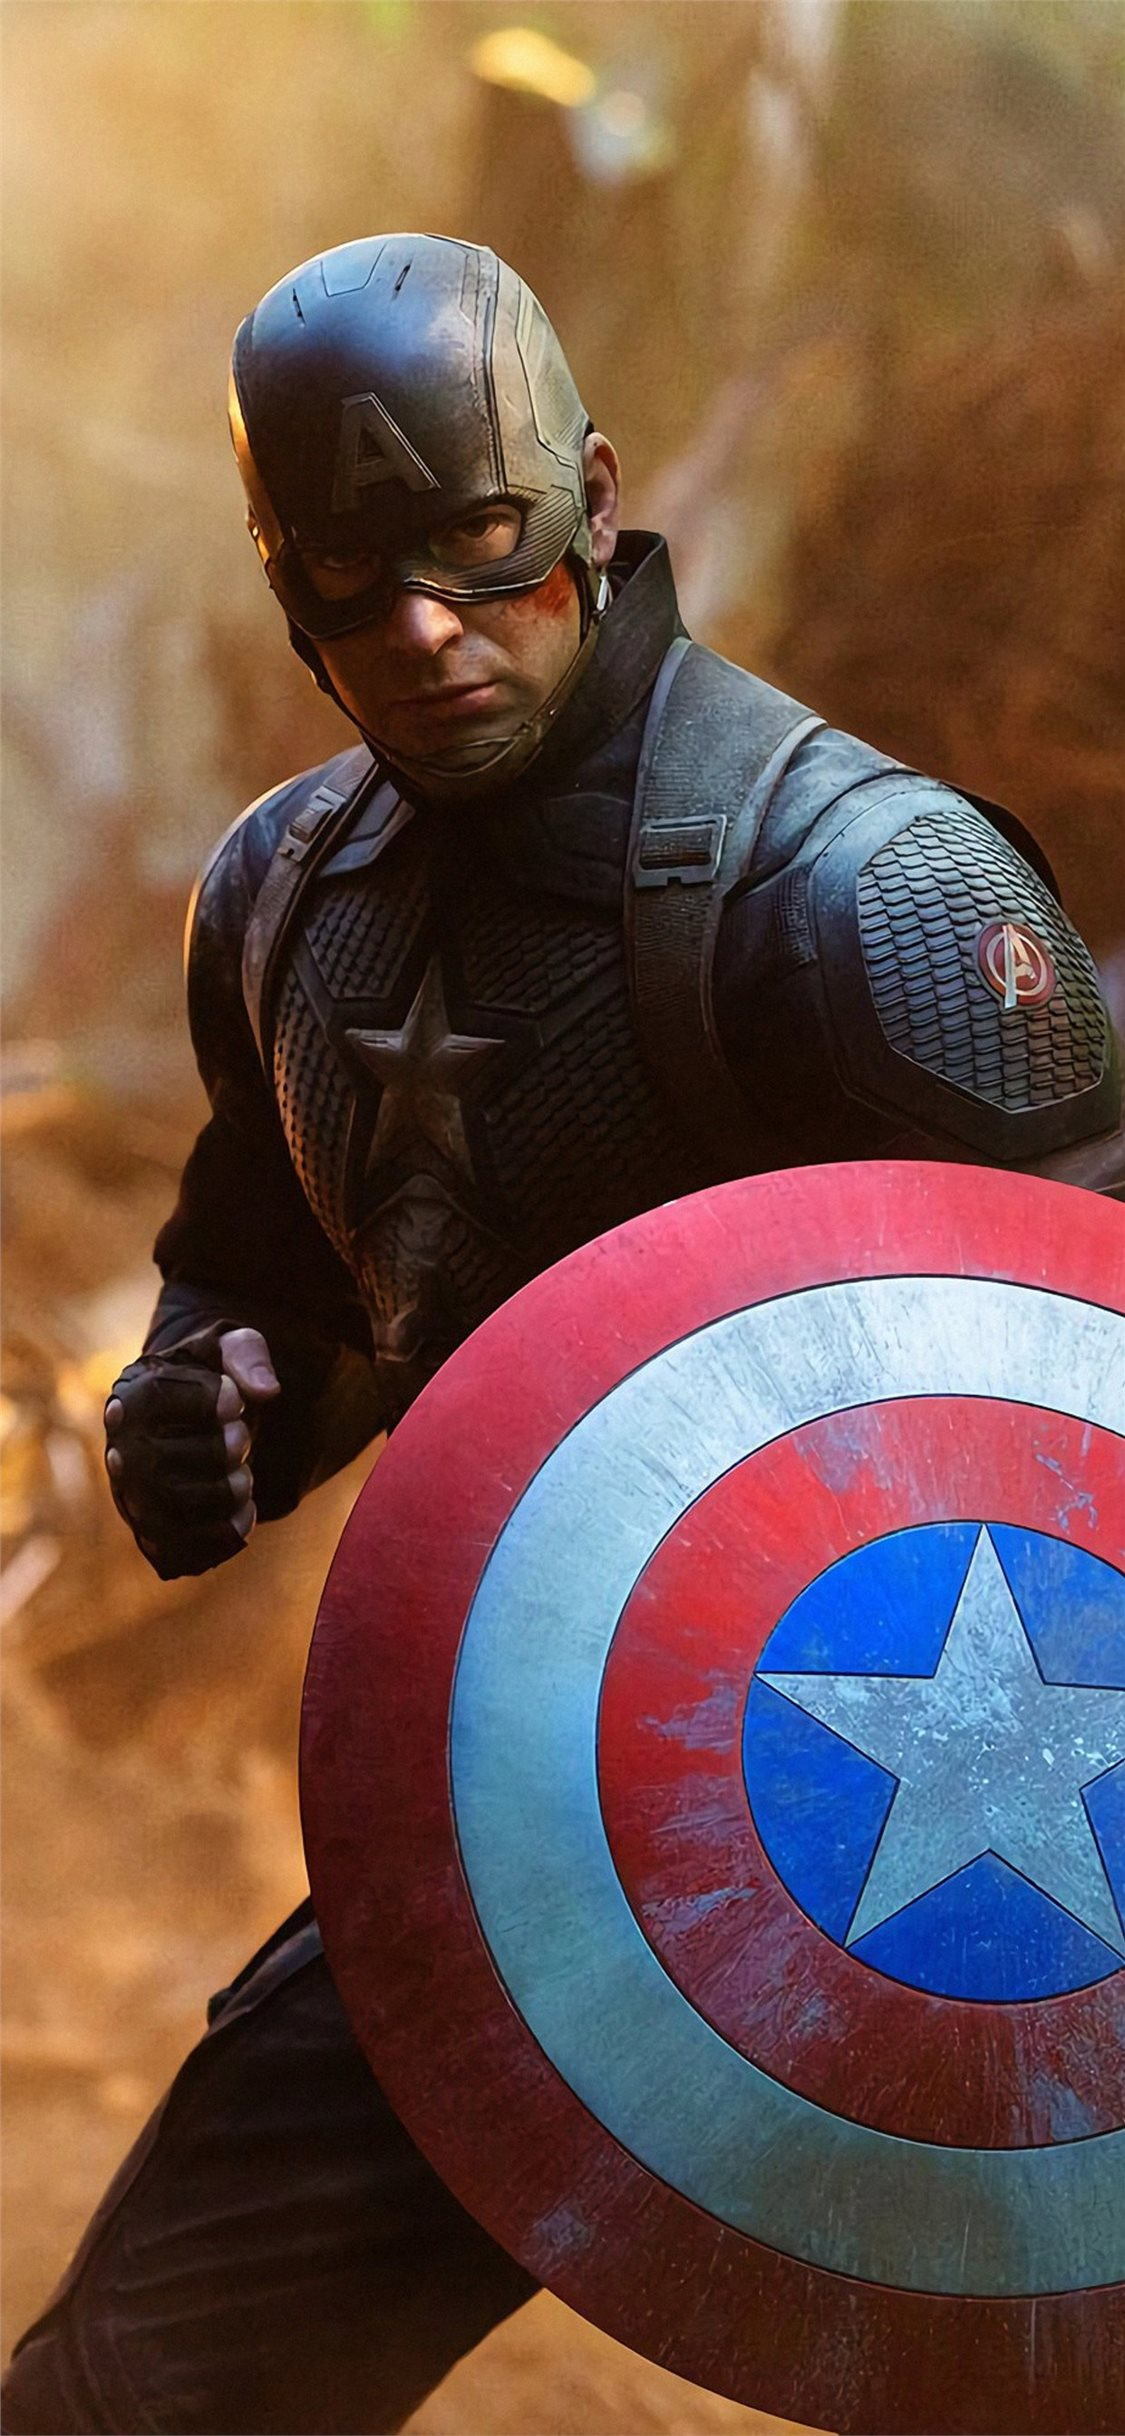 Captain America Avengers Endgame Movie Iphone X Wallpapers